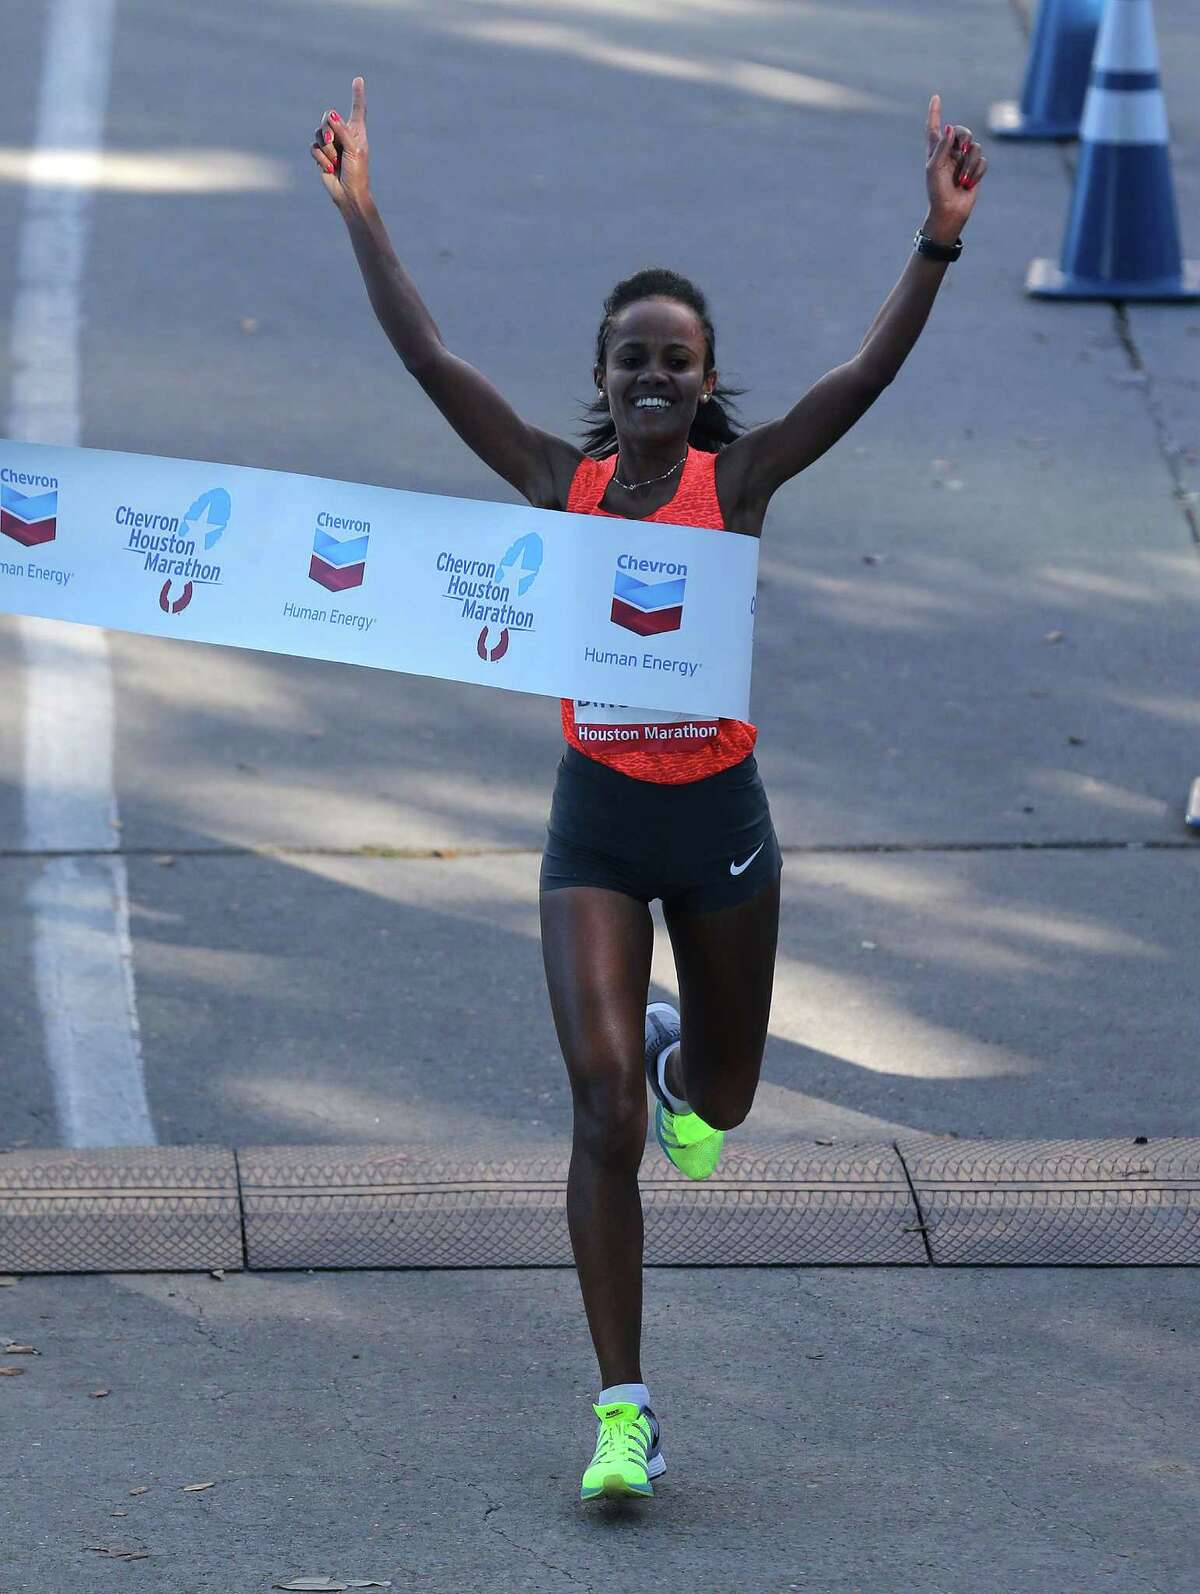 Biruktayit Degefa, who won the 2016 Chevron Houston Marathon, will be among the favorites to win again the 2018 edition on Sunday. Two other Ethiopian women have dropped out of the race.